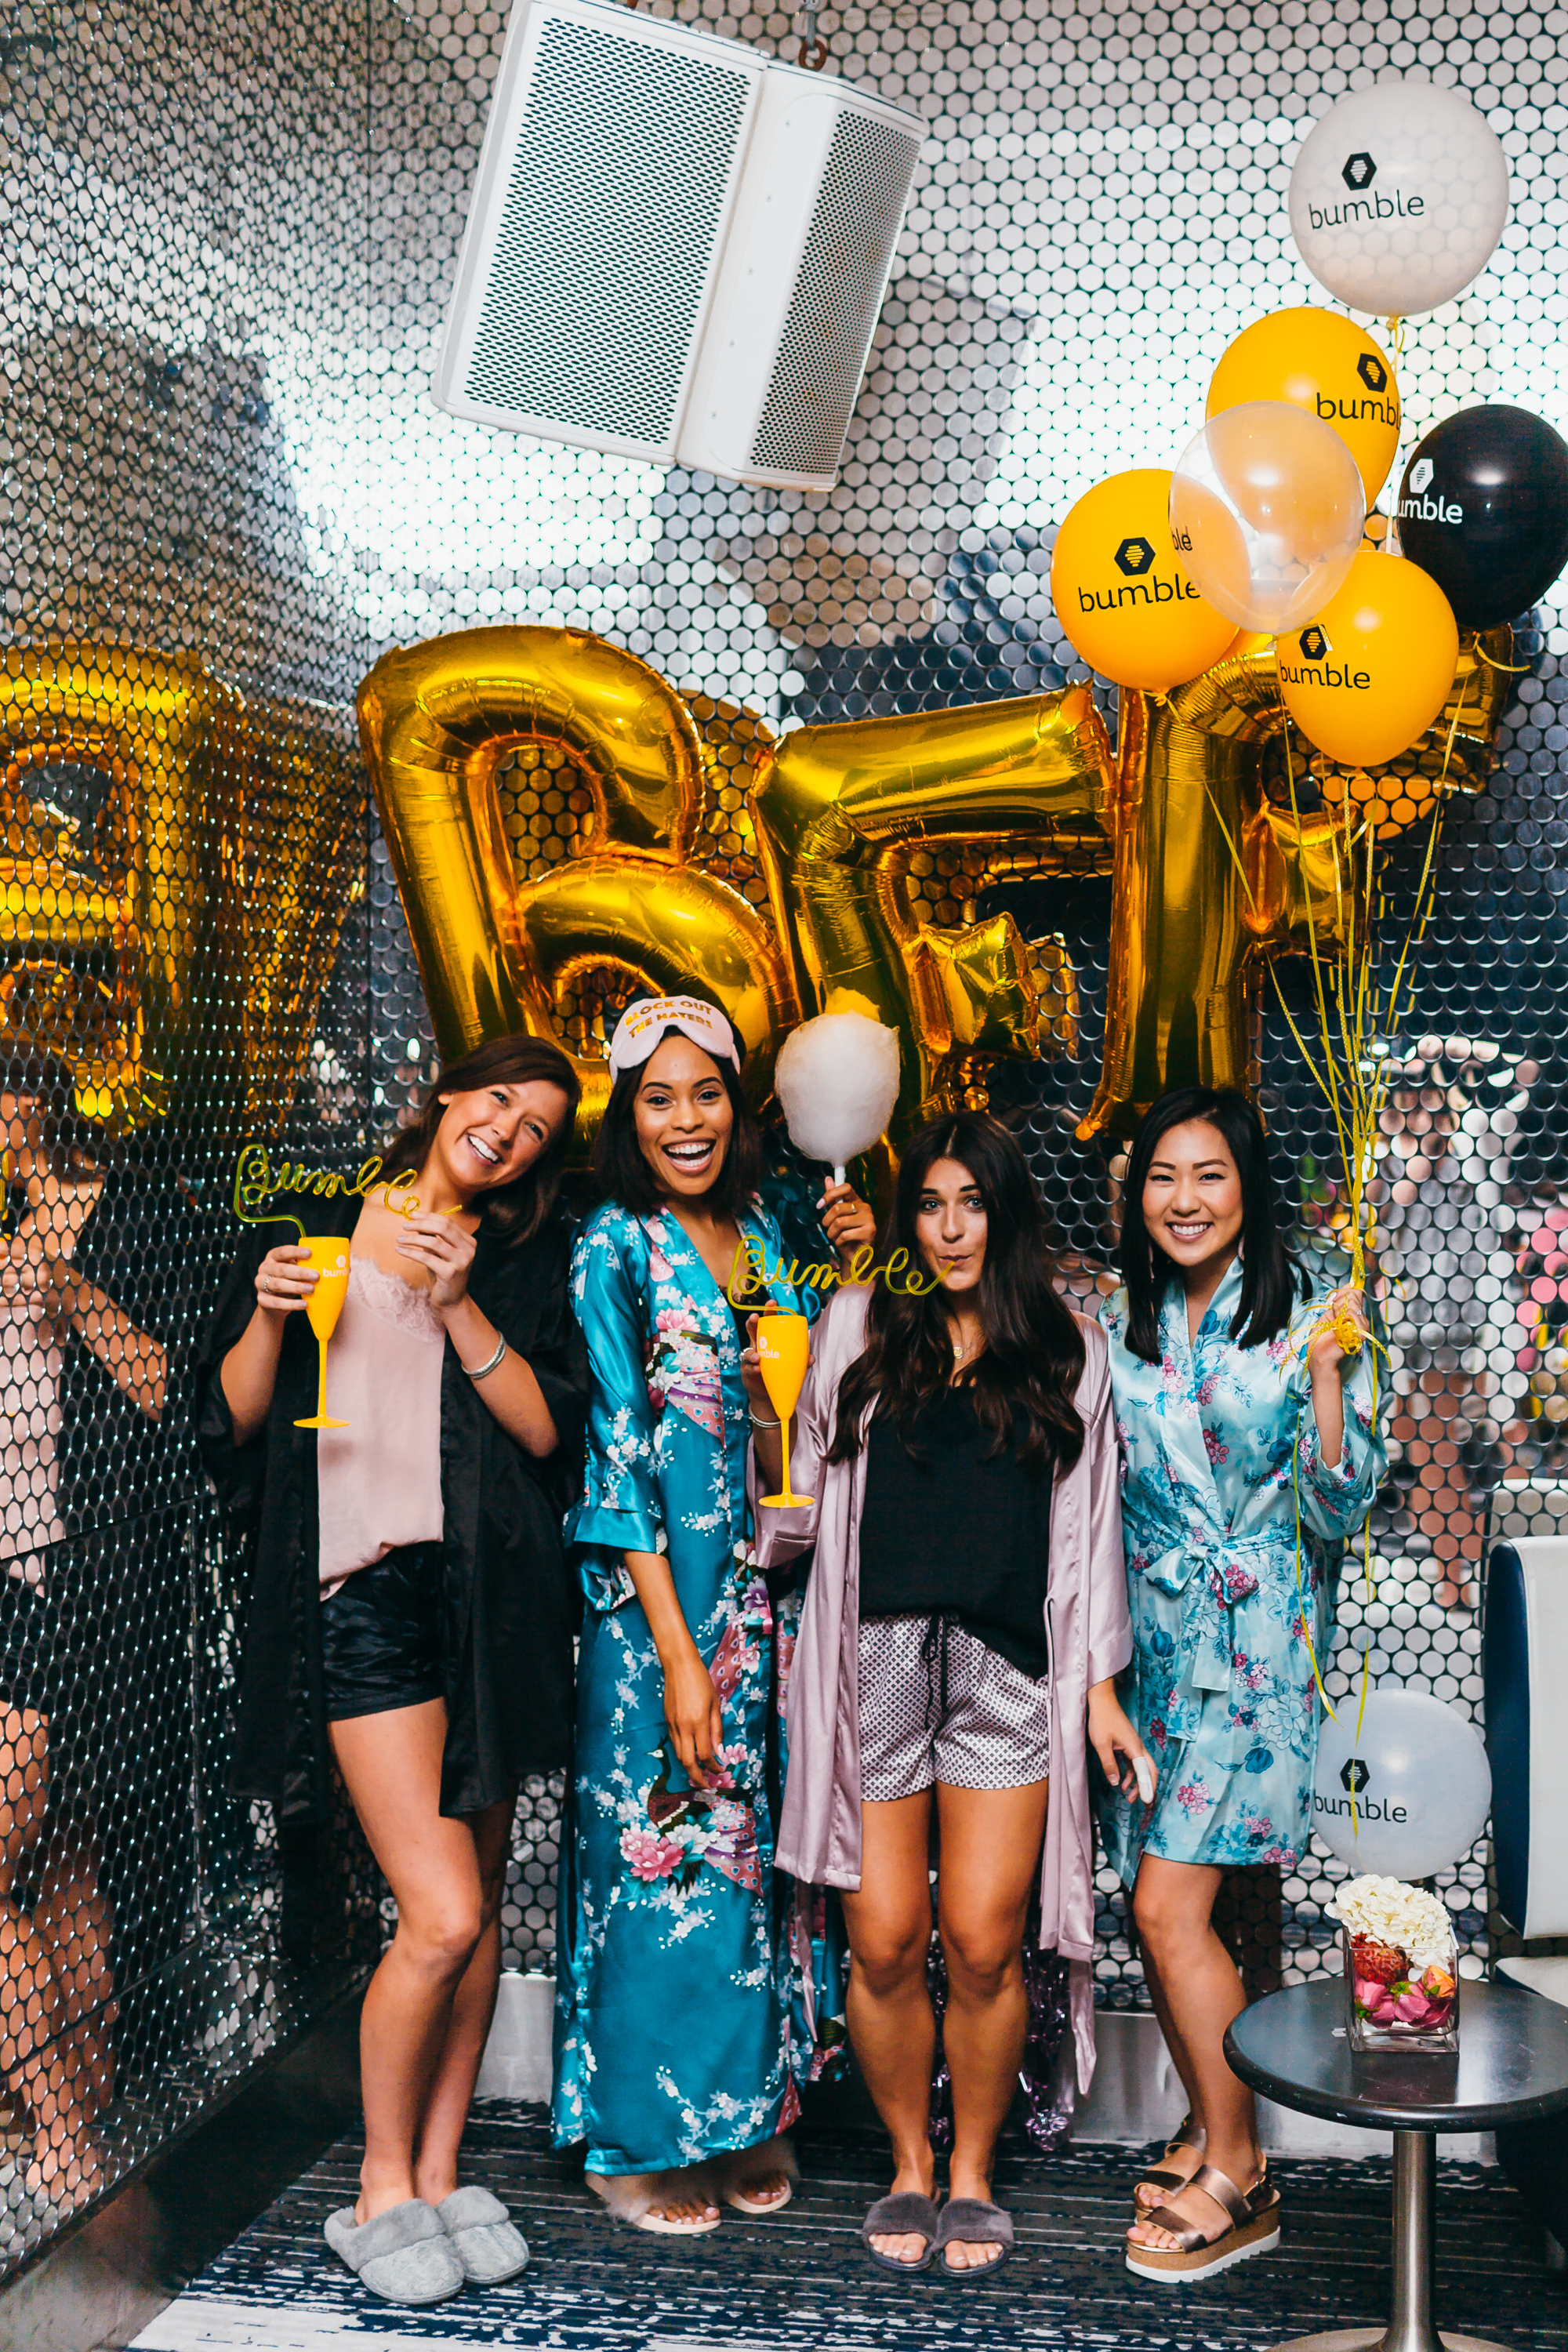 bumble-bff-dallas-launch-event-6644.jpg